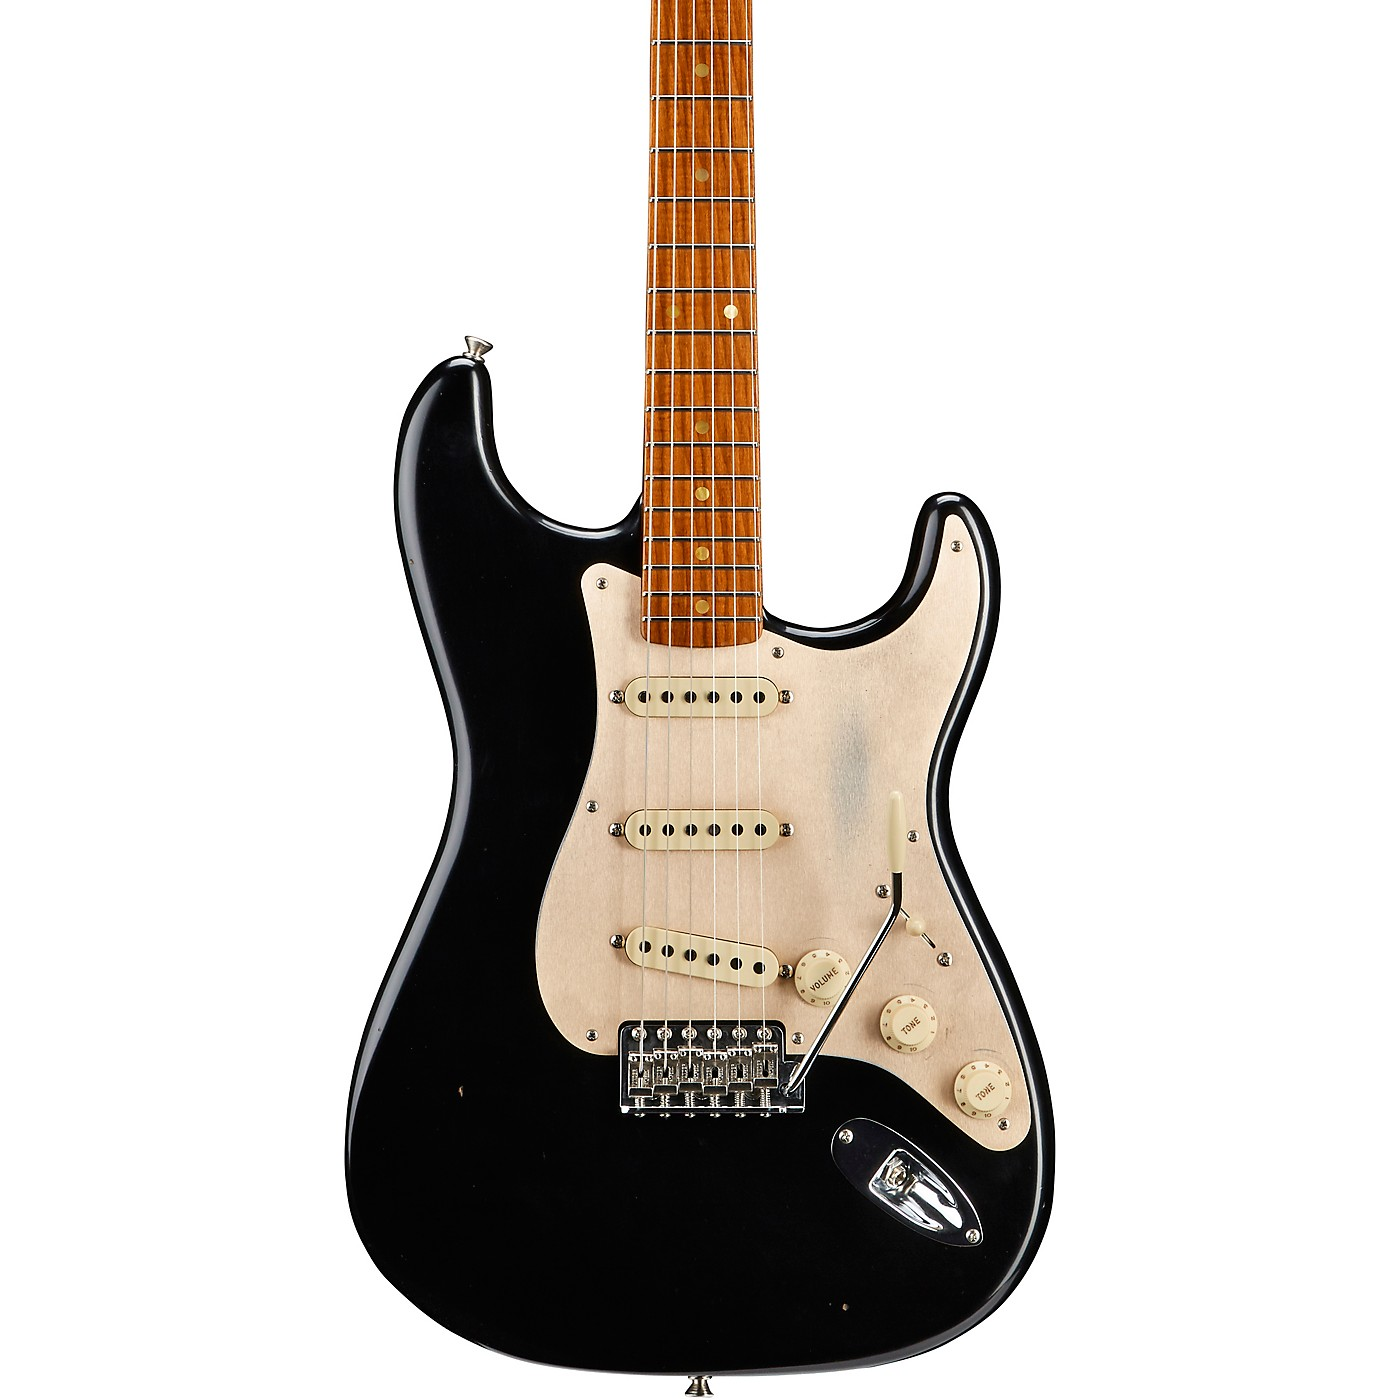 Fender Custom Shop 58 Special Stratocaster Journeyman Relic with Closet Classic Hardware Limited Edition Electric Guitar thumbnail